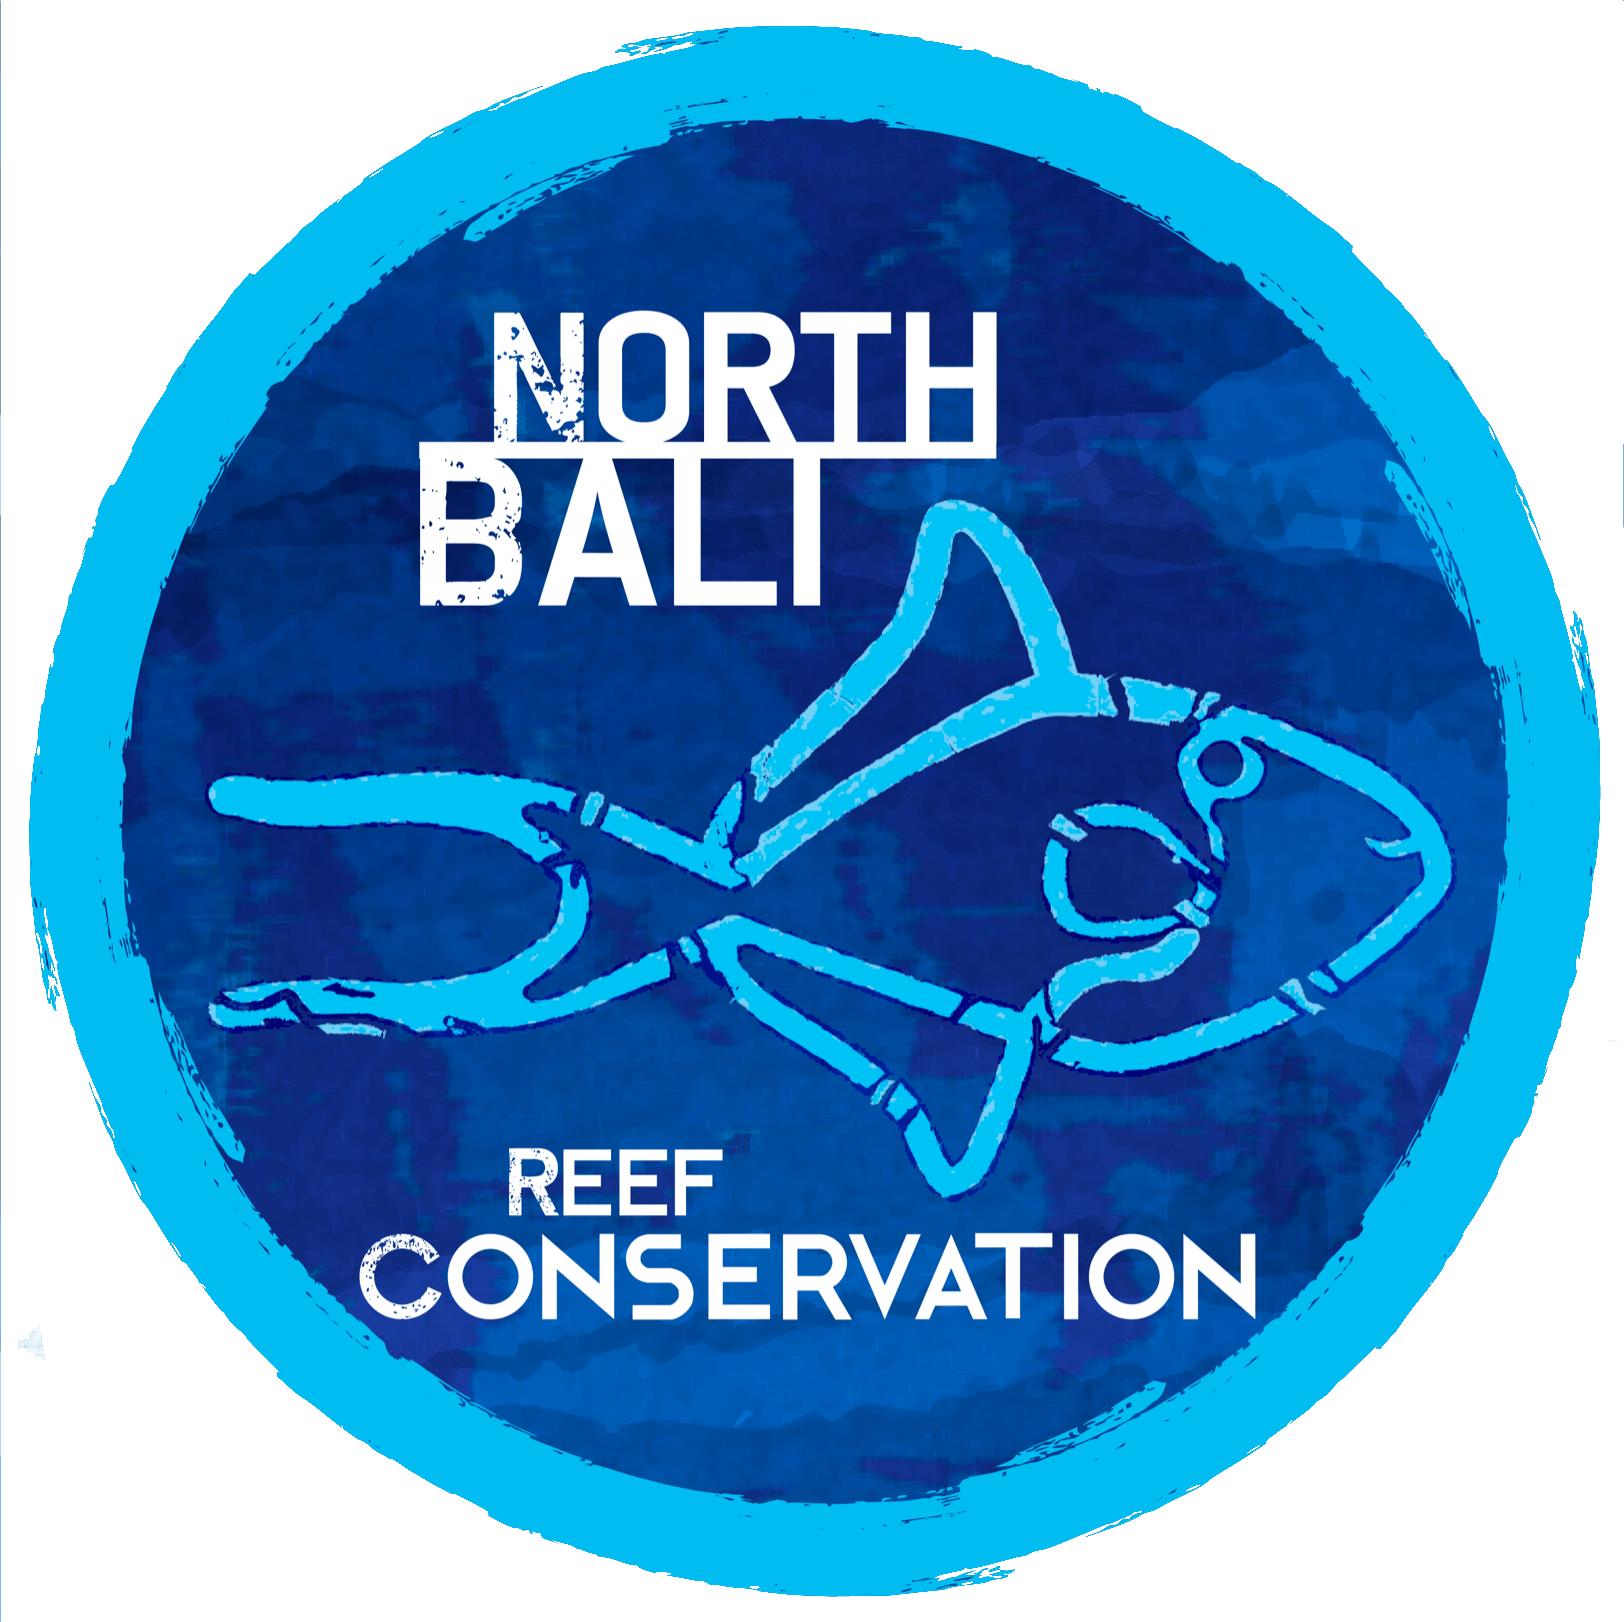 north bali reef conservation logo